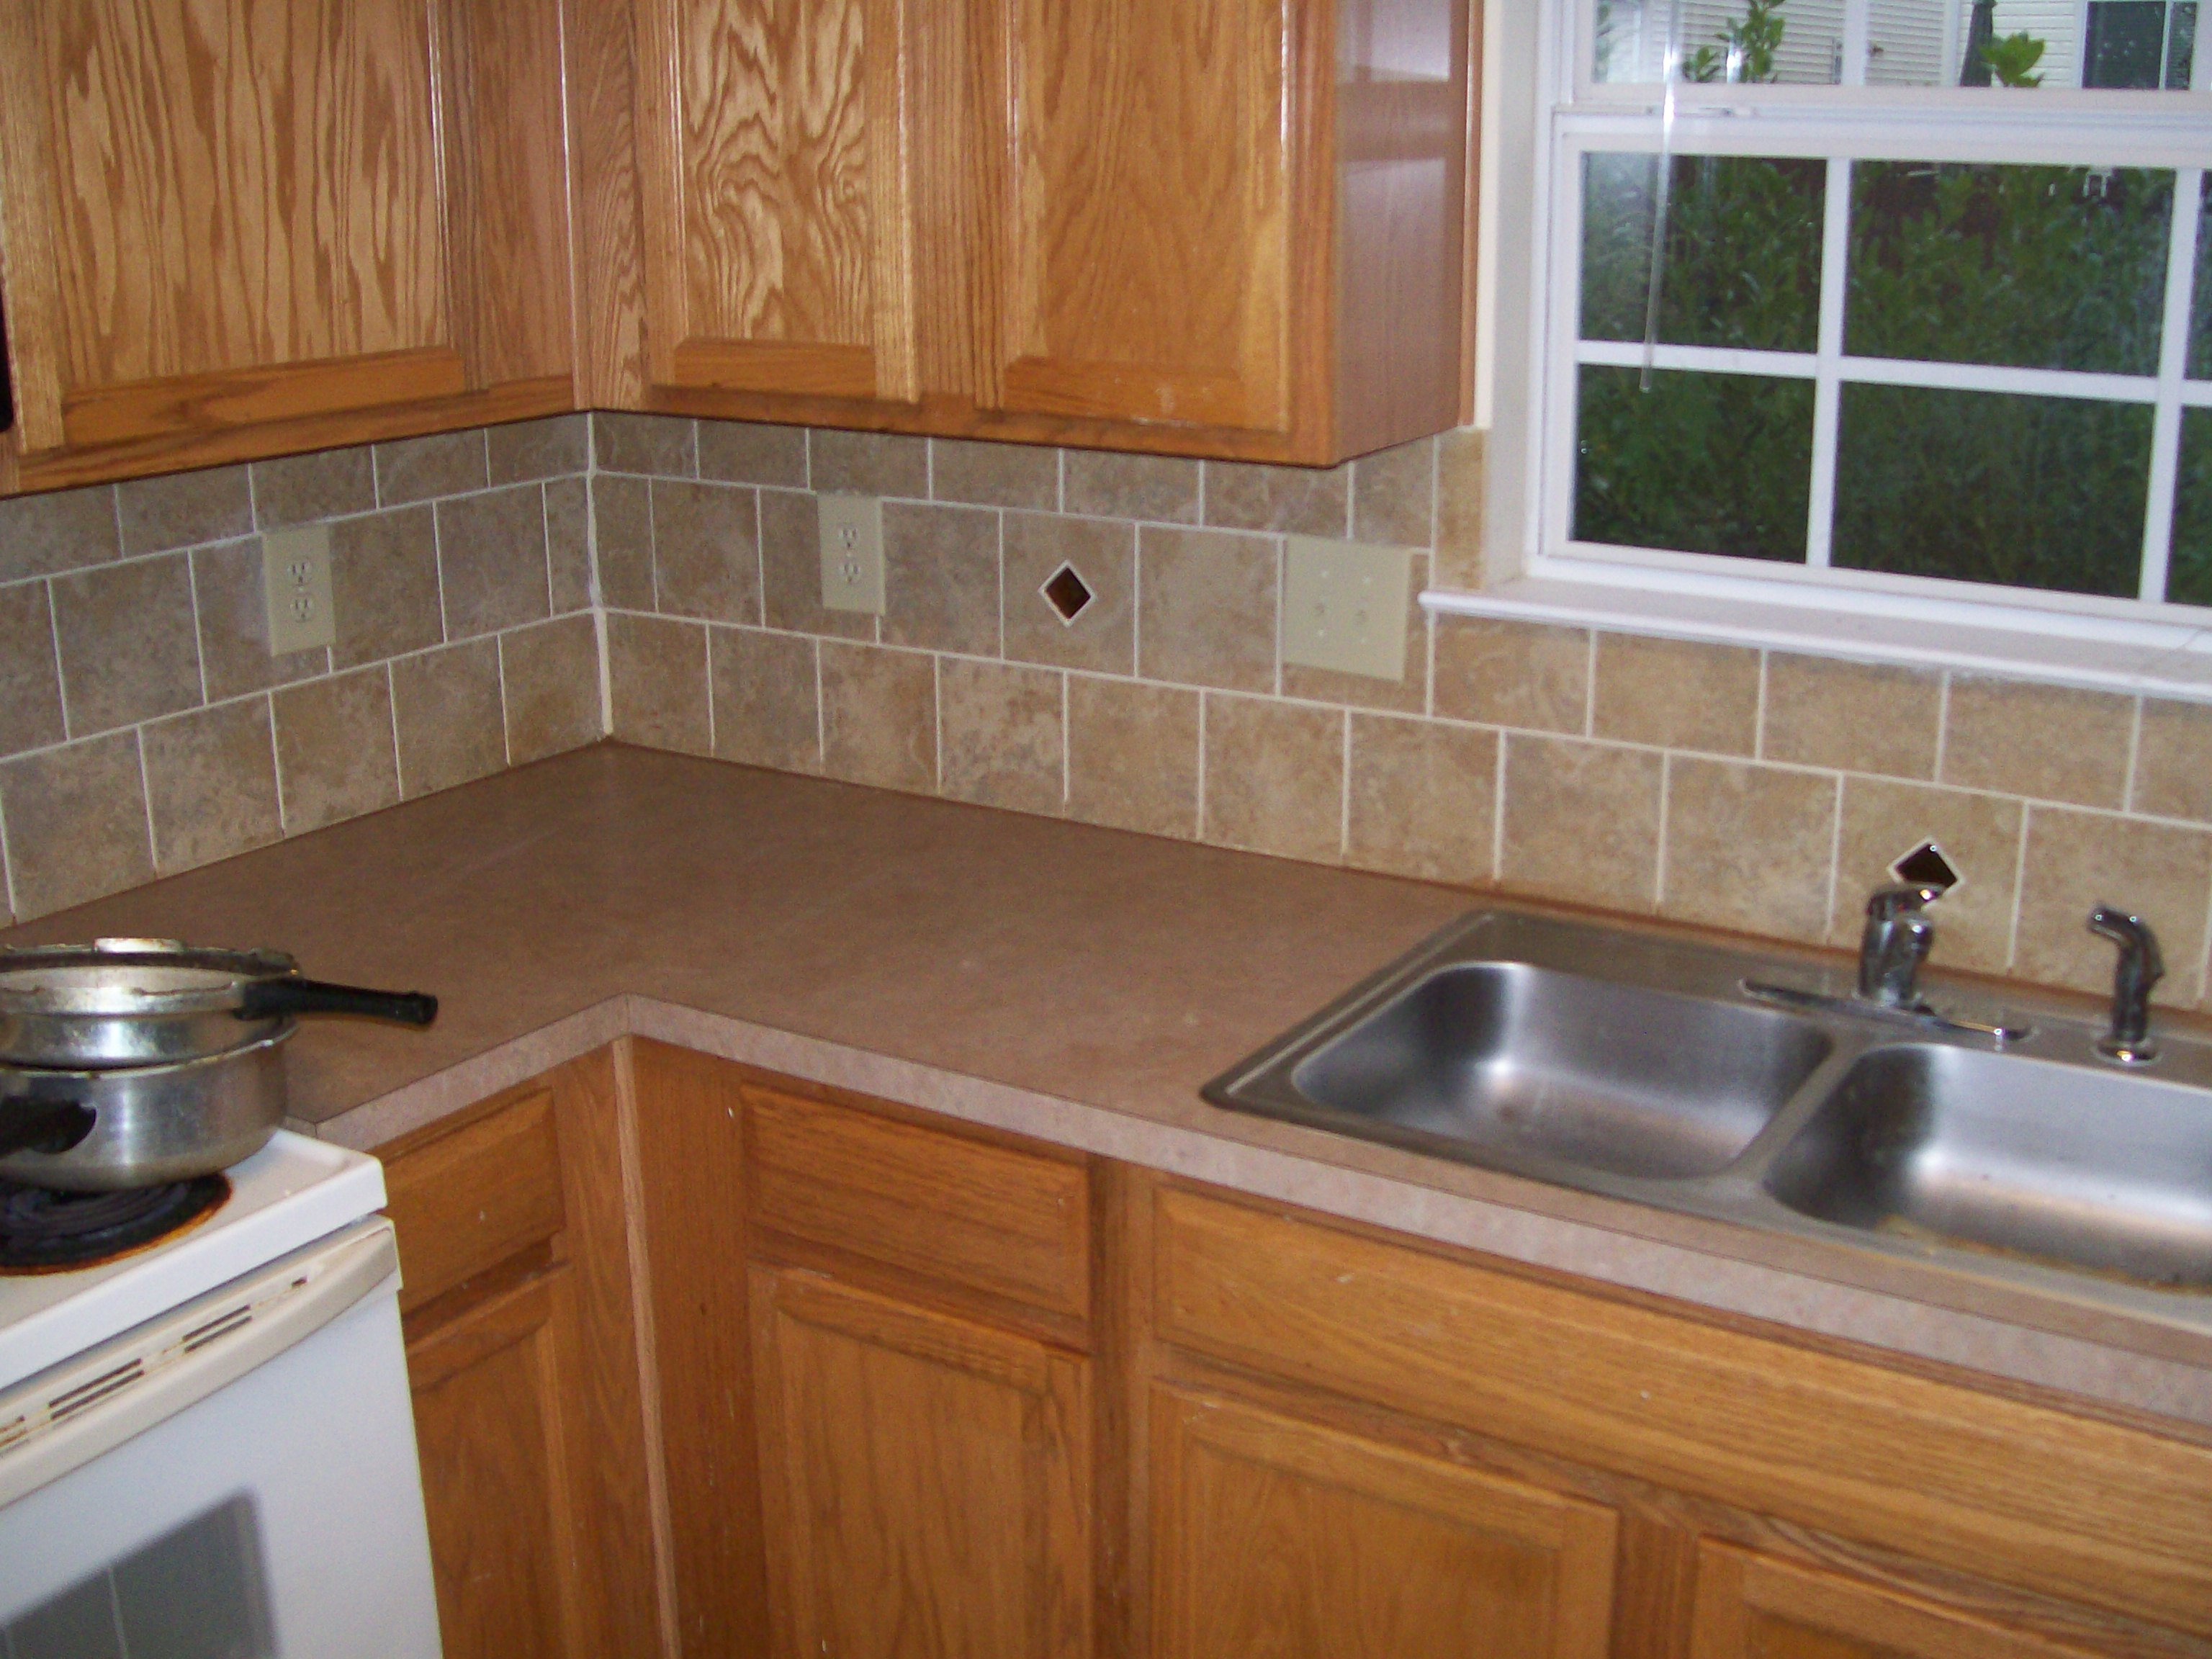 kitchen backsplash gallery decorating ideas pictures of tile backsplashes in kitchens kzines